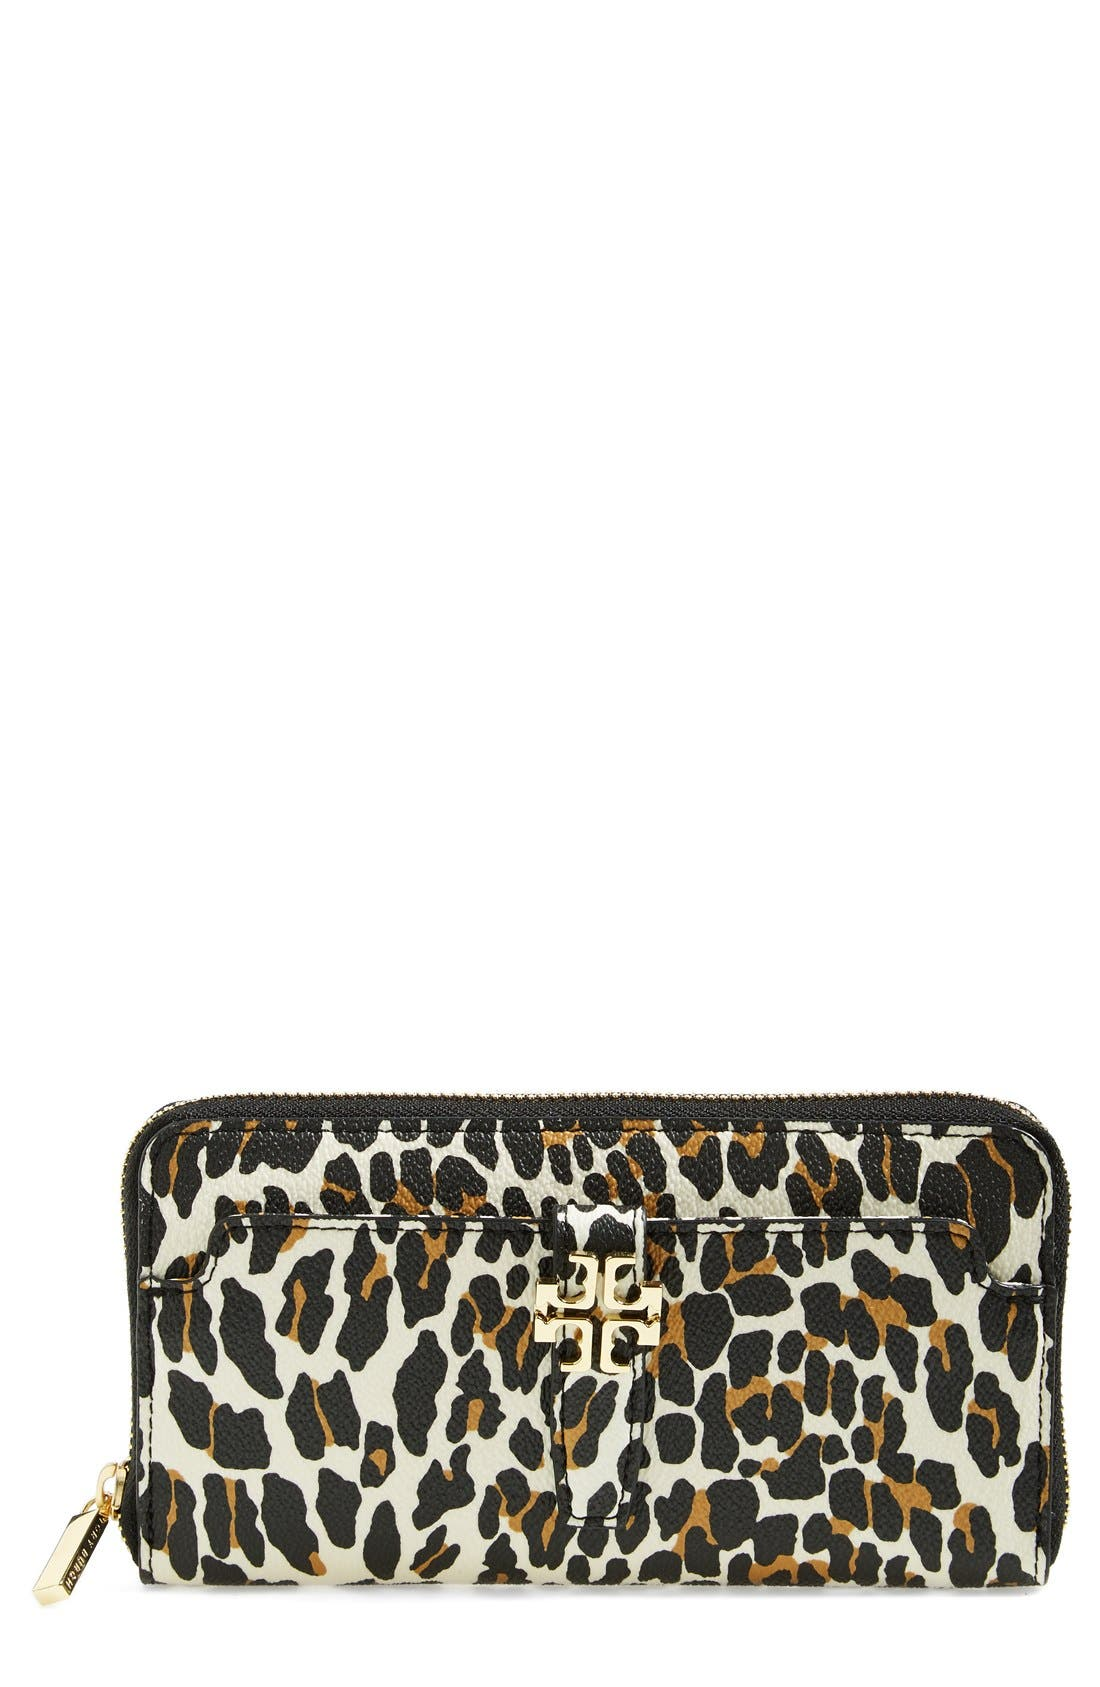 Alternate Image 1 Selected - Tory Burch 'Plaque' Leopard Print Continental Wallet